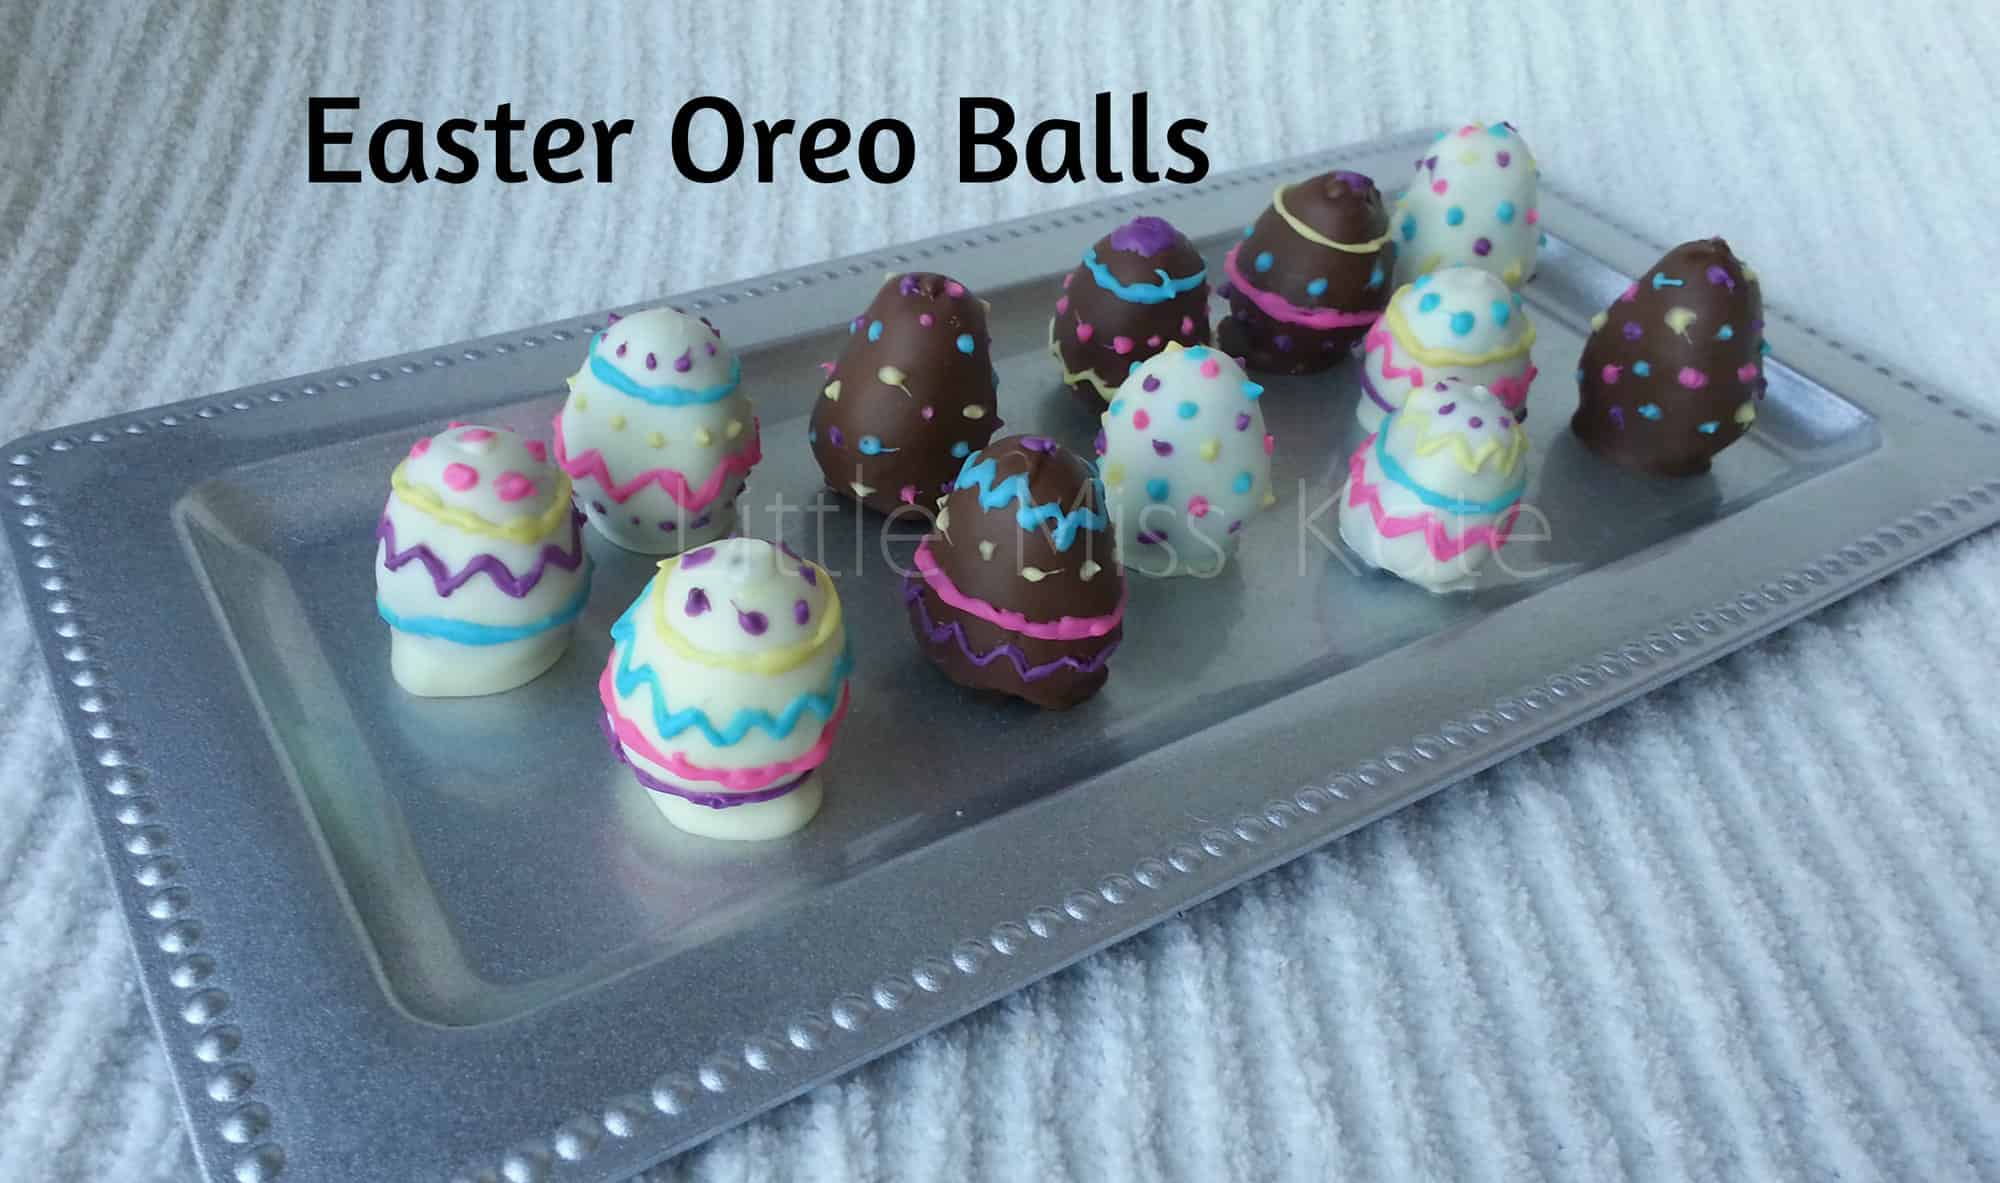 Easter Oreo Balls - Easter Dessert Idea via Little Miss kate